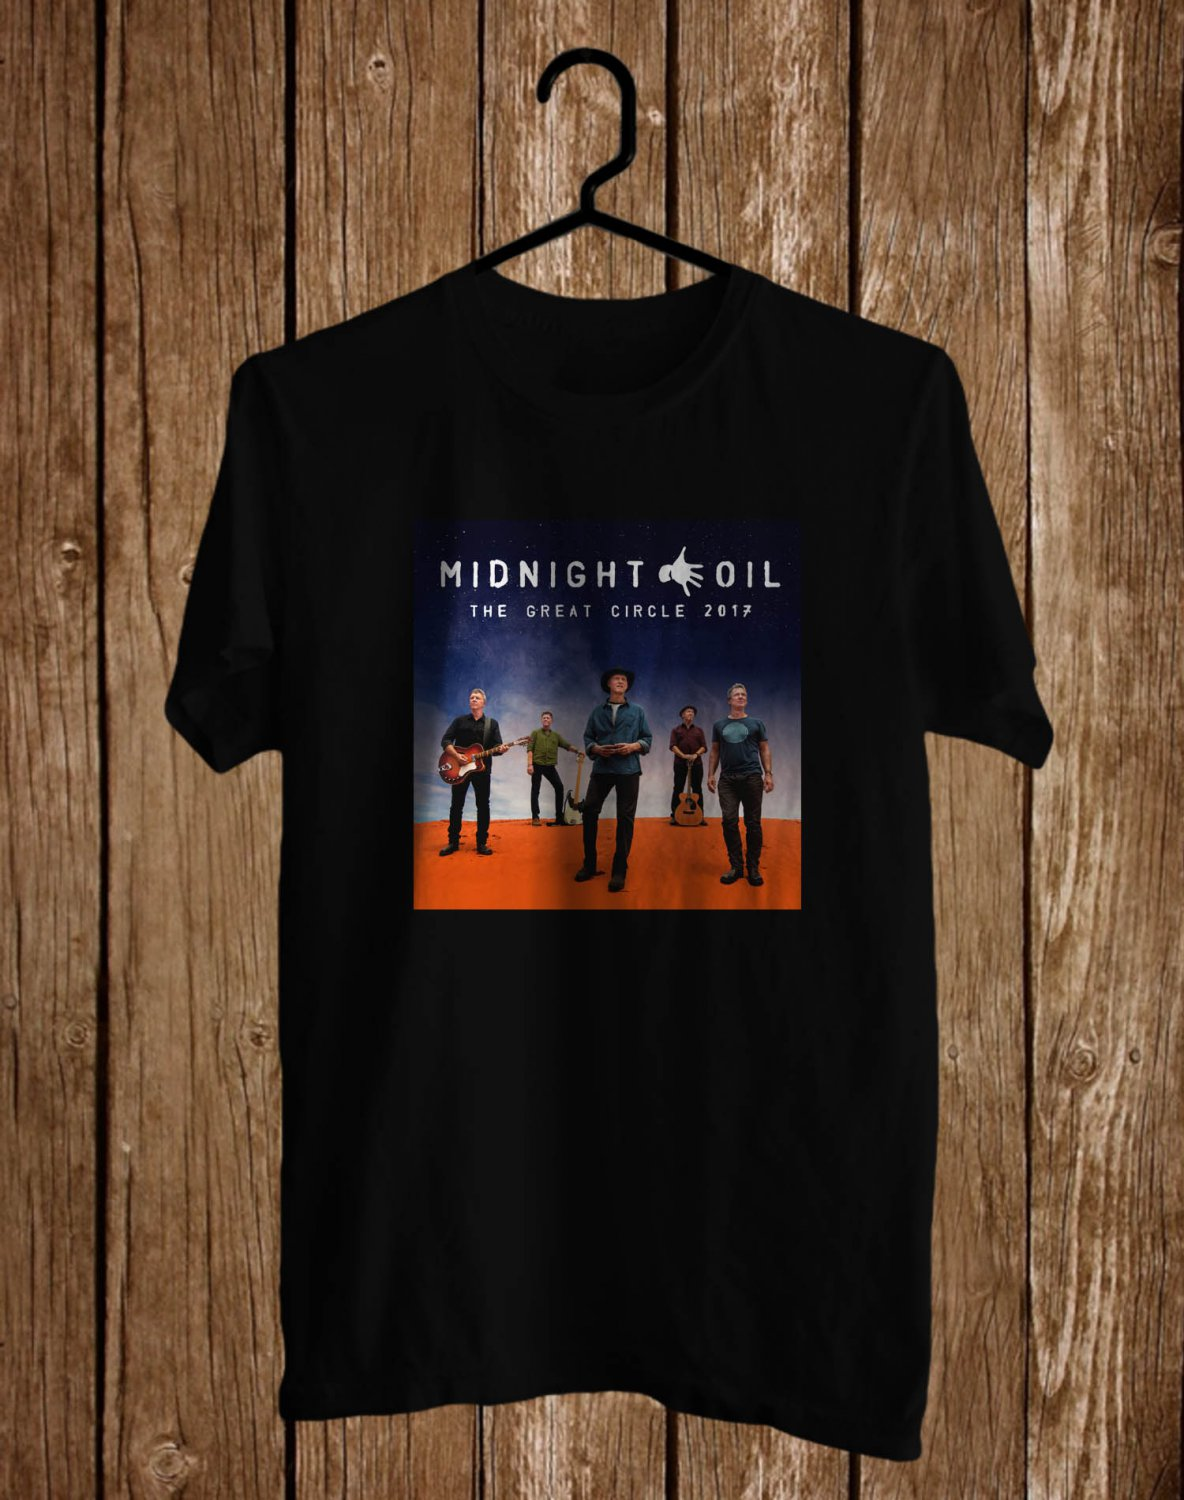 Midnight Oil The Great Circle Tour logo Black Tee's Front Side by Complexart z1